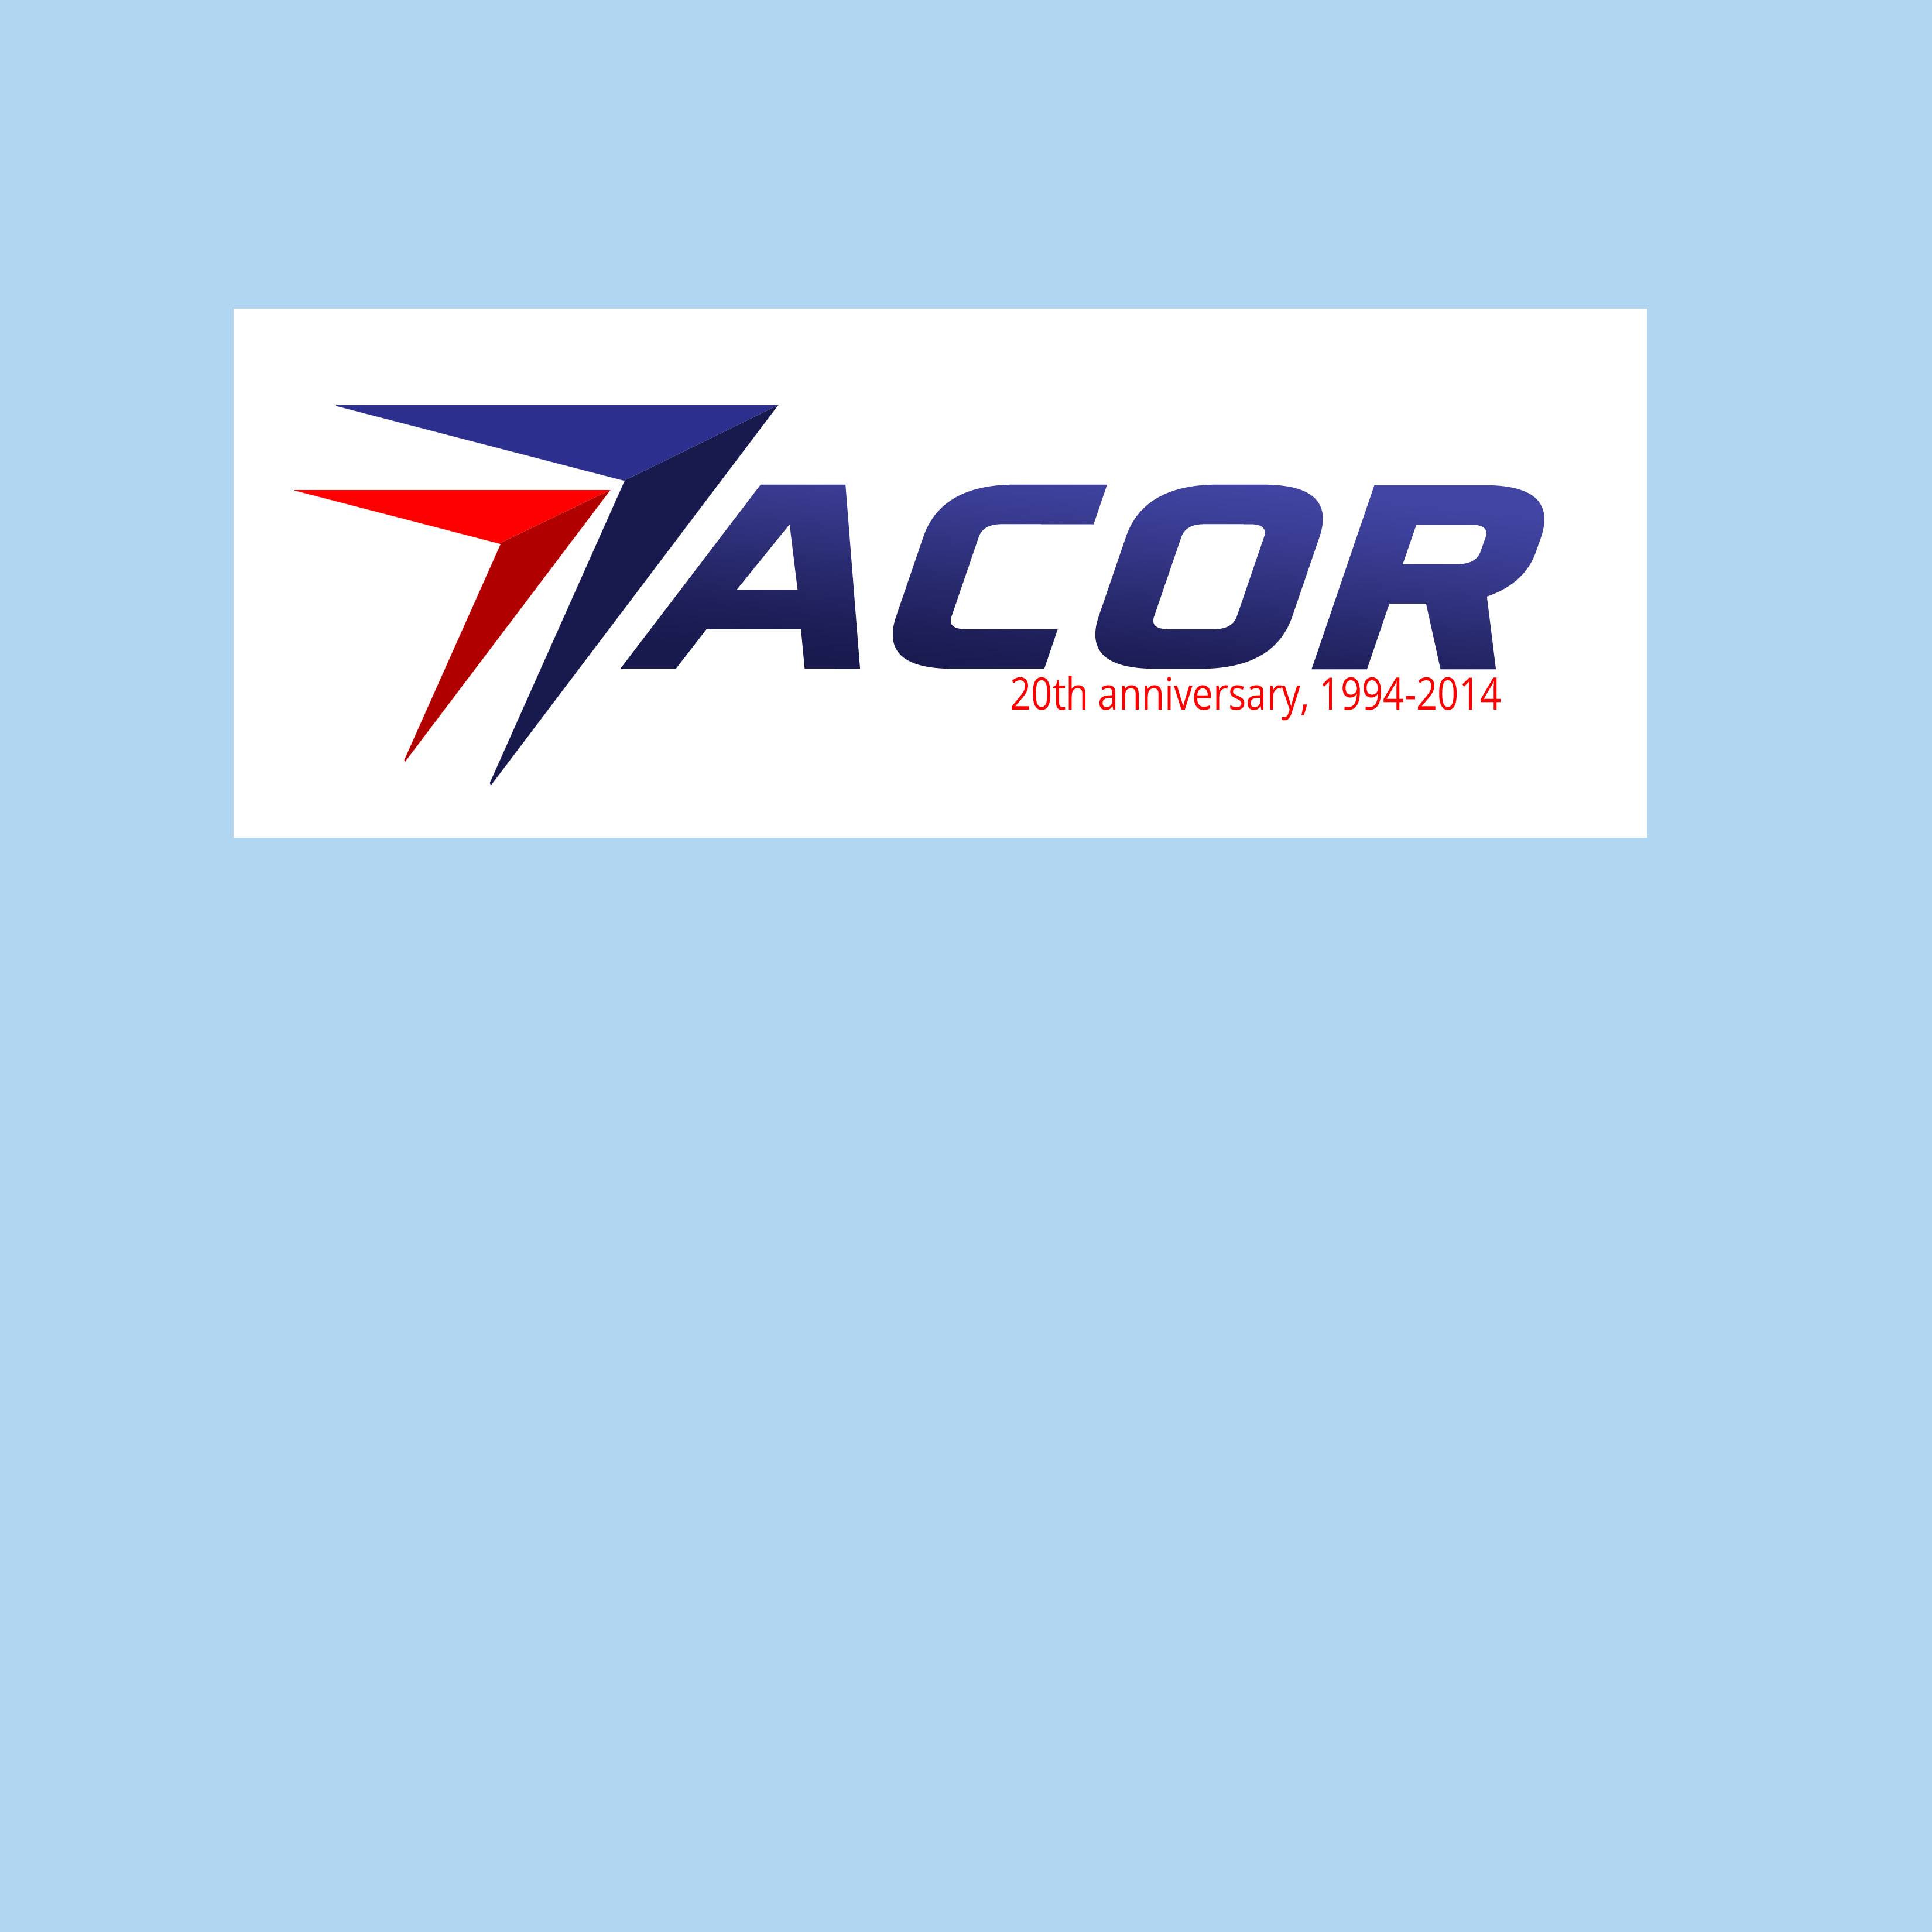 Logo Design by Allan Esclamado - Entry No. 40 in the Logo Design Contest Artistic Logo Design for TACOR.